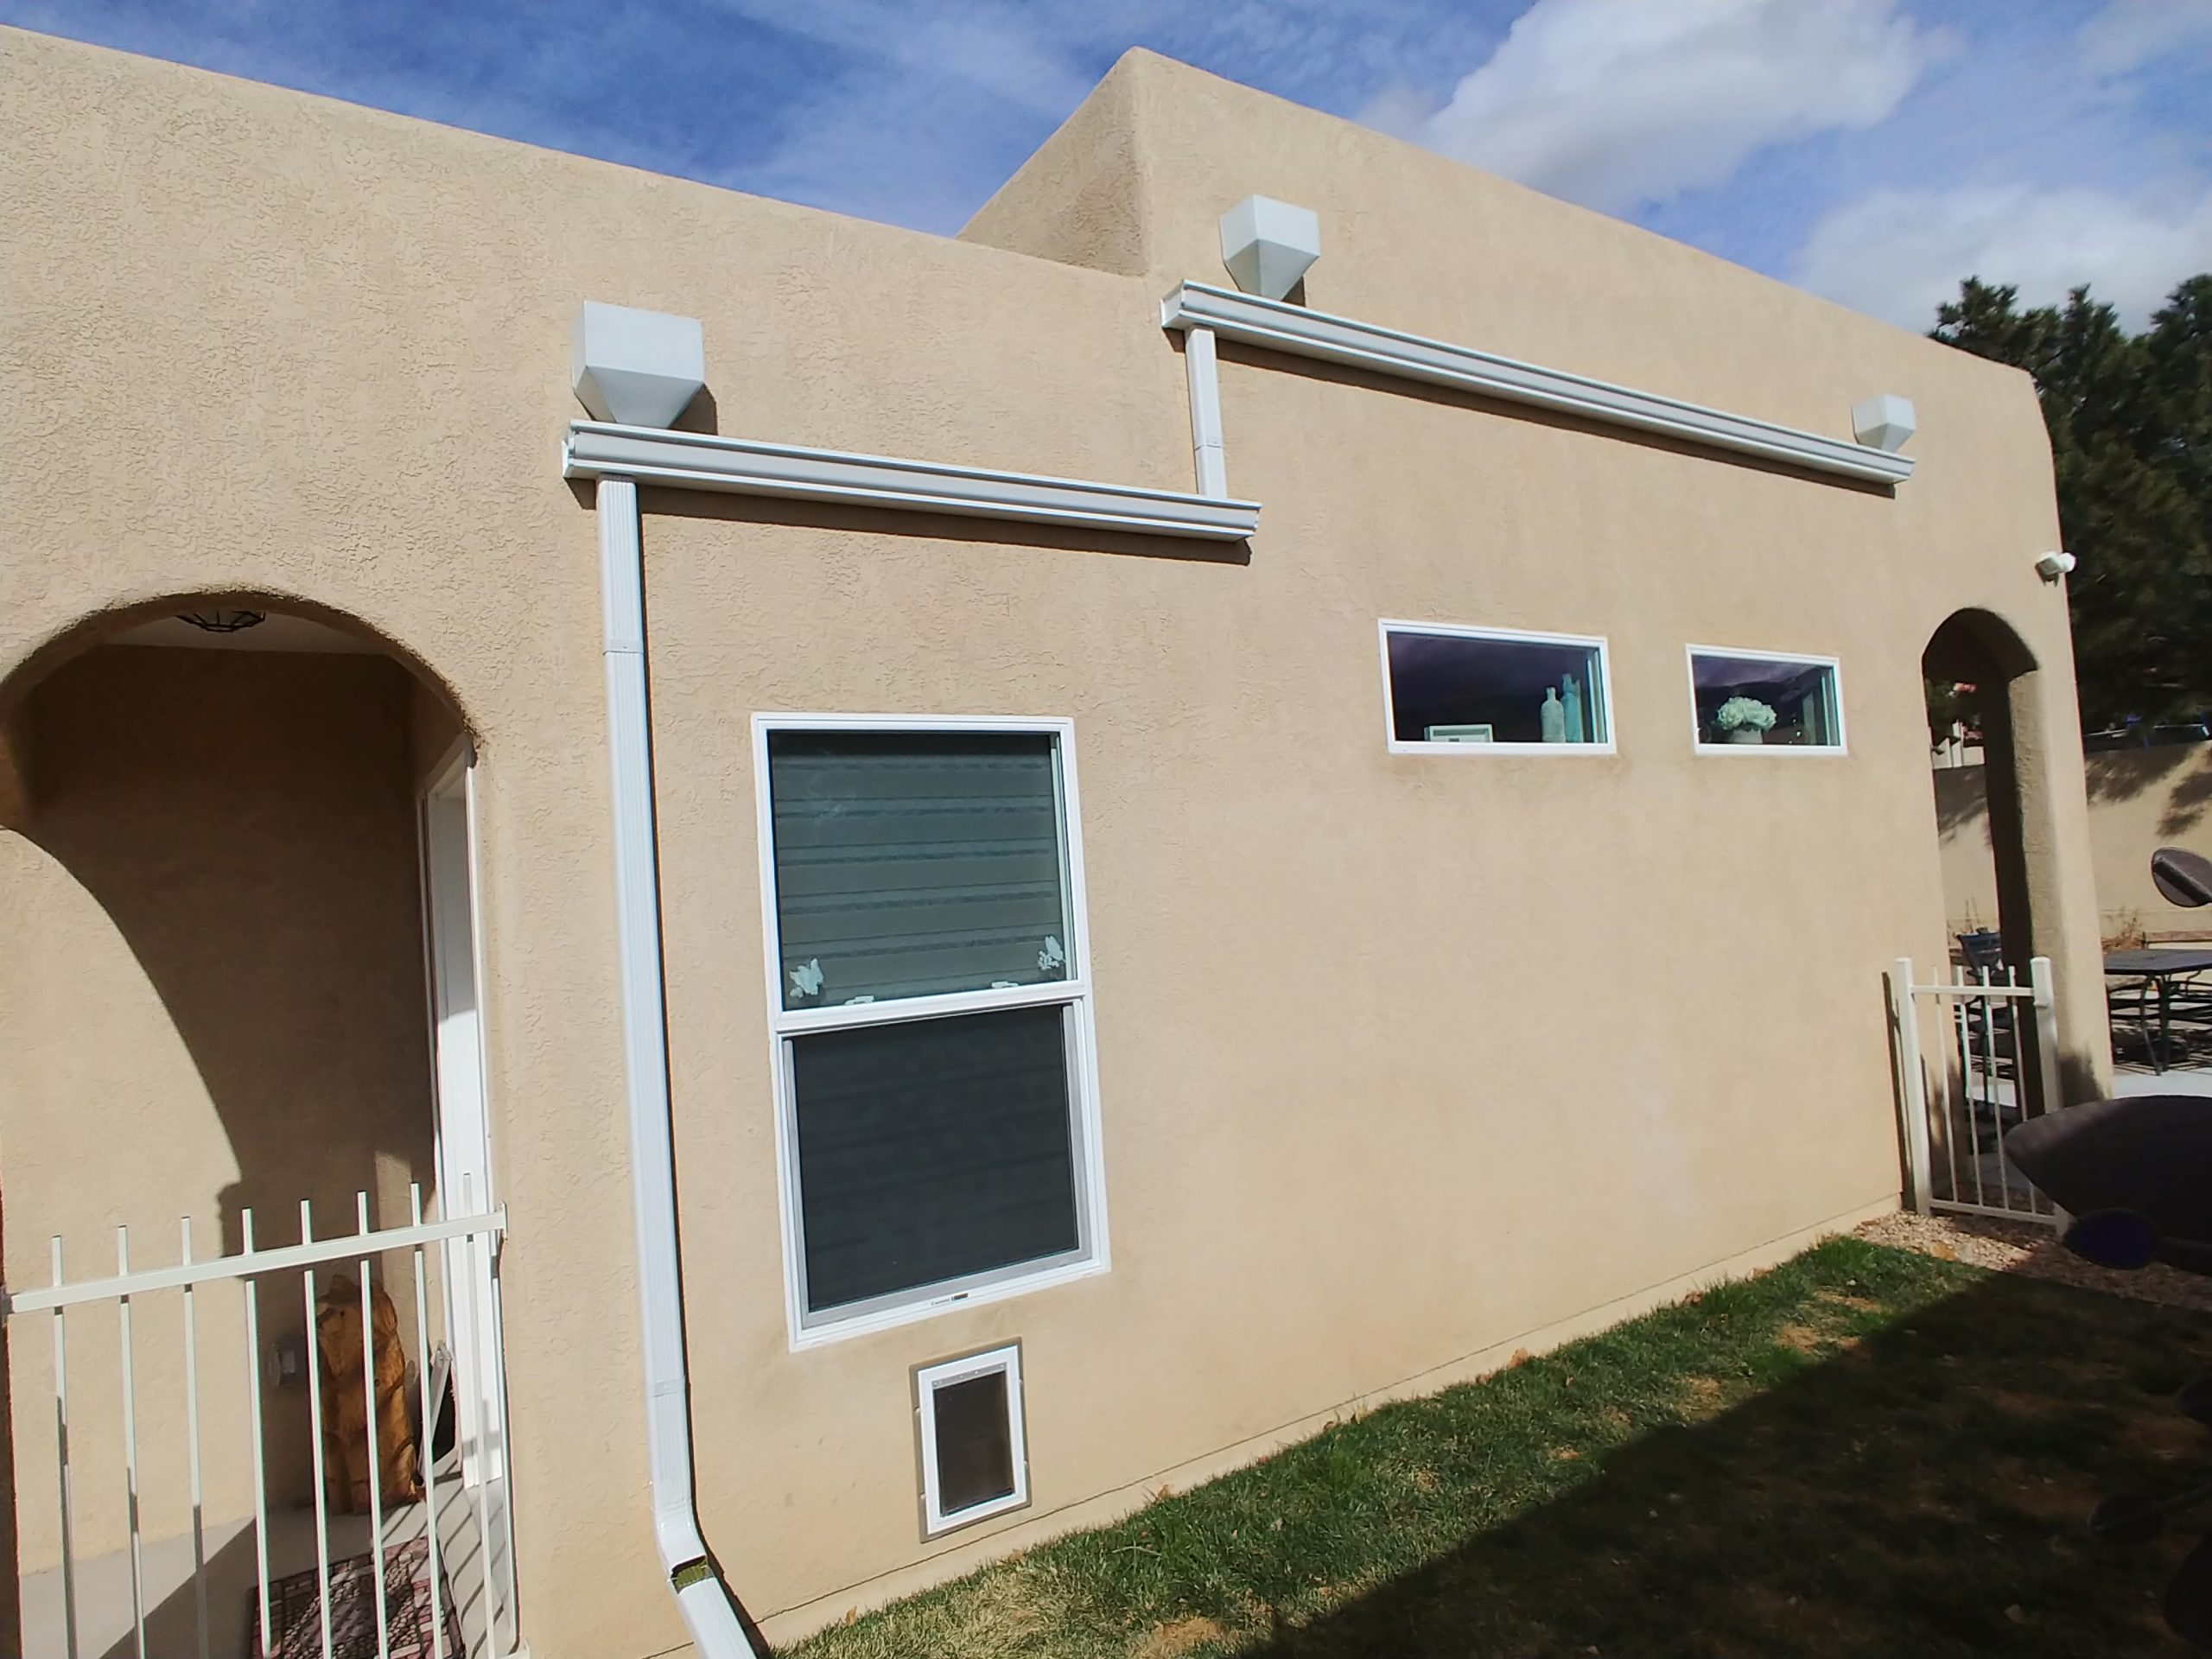 Gutter work in New Mexico